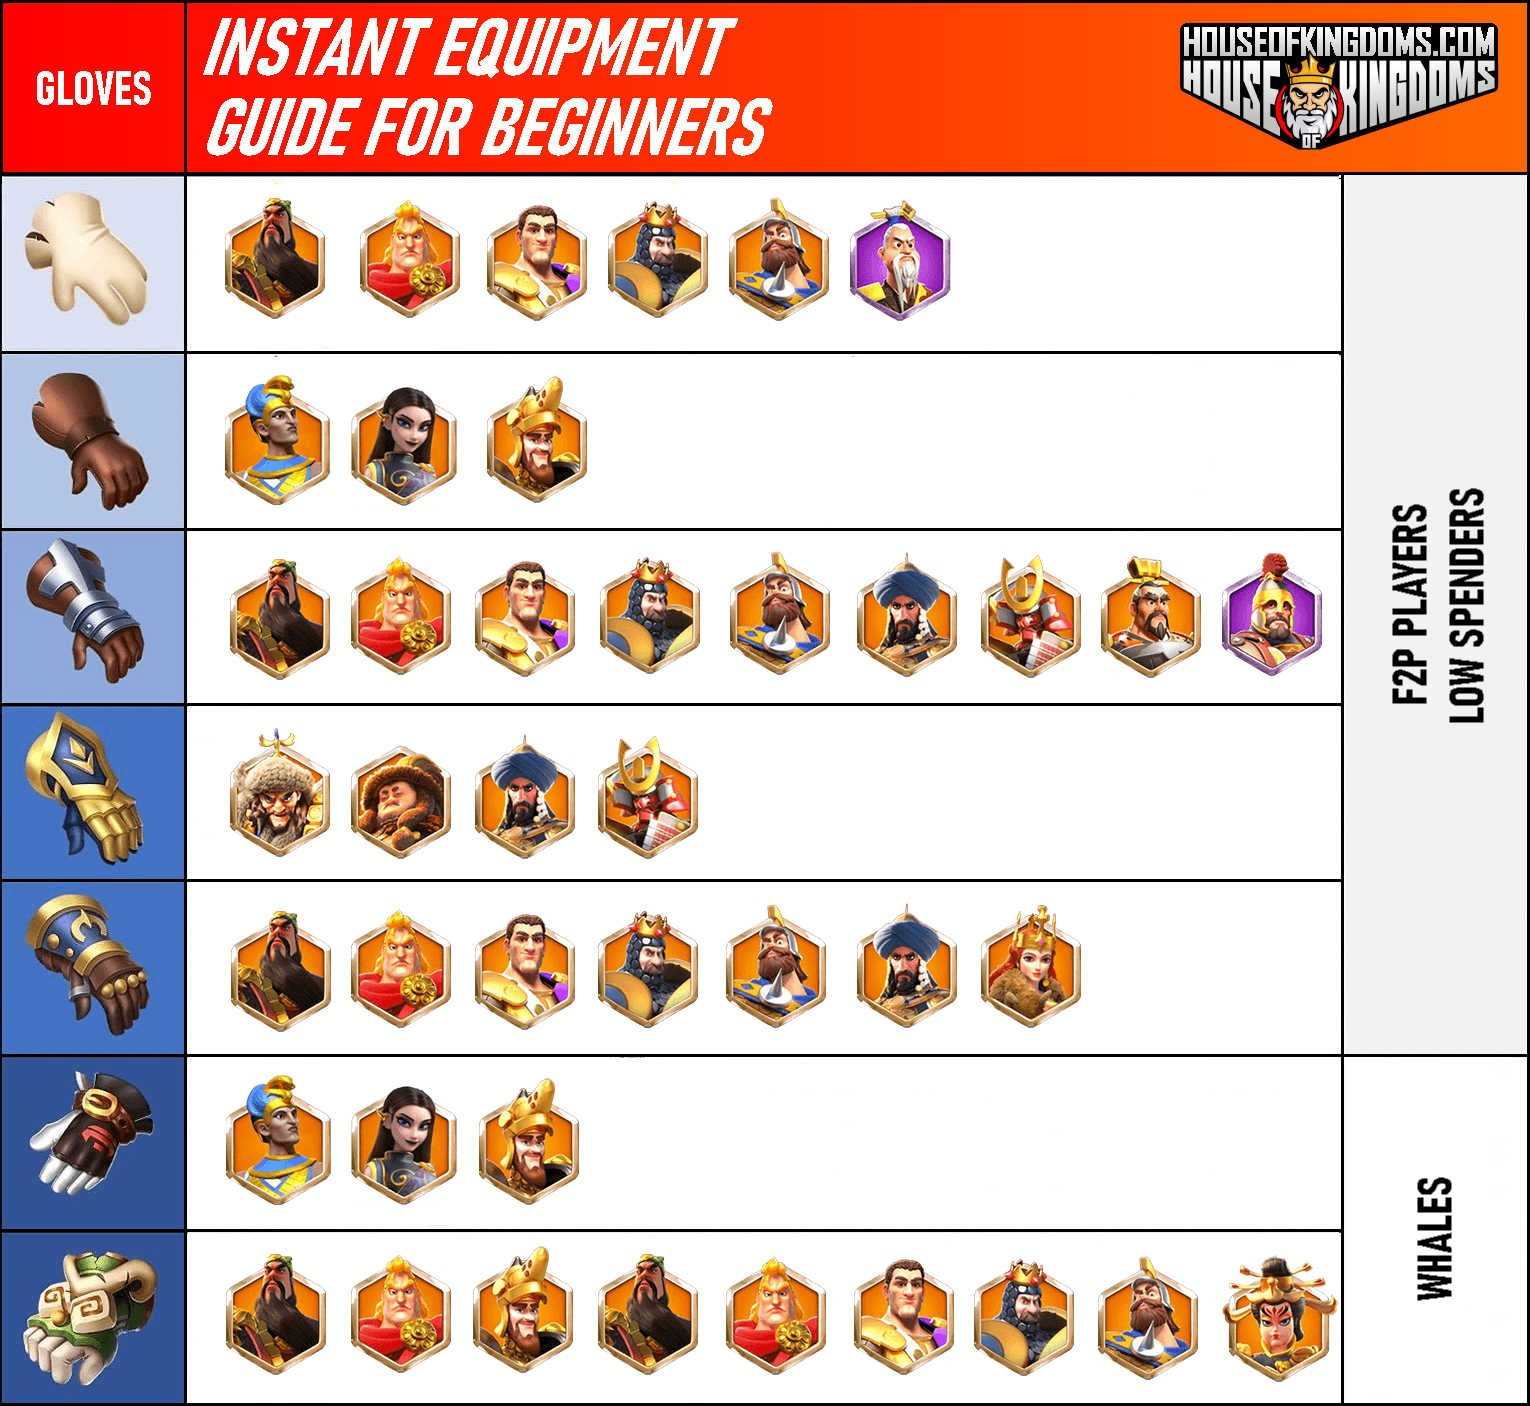 Rise of Kingdoms Gloves Equipment Guide